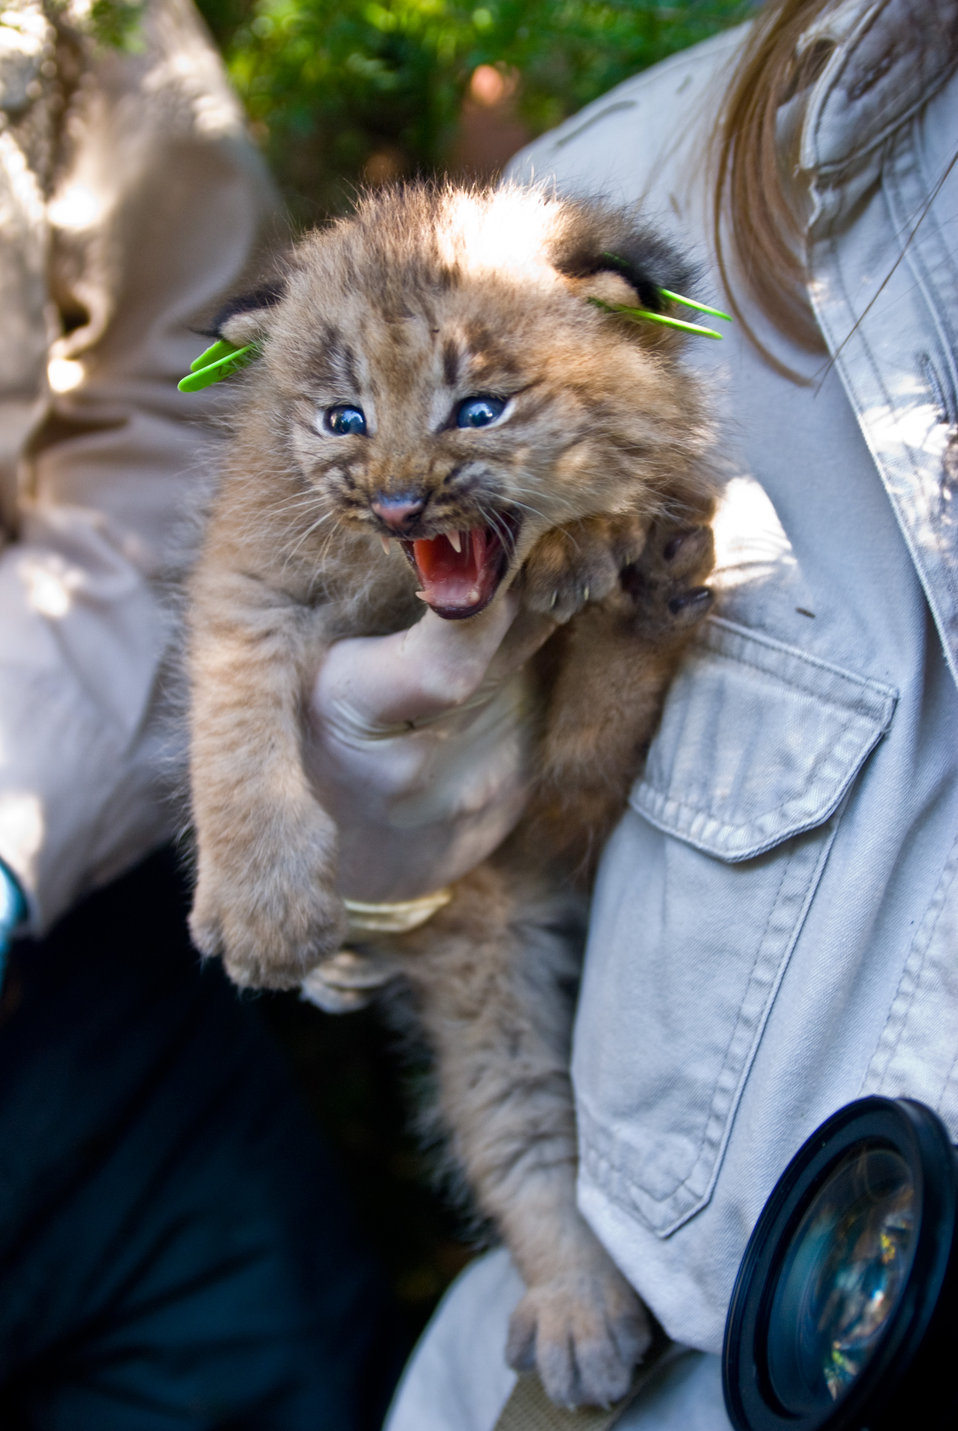 Canada Lynx Kitten, not your average kitten